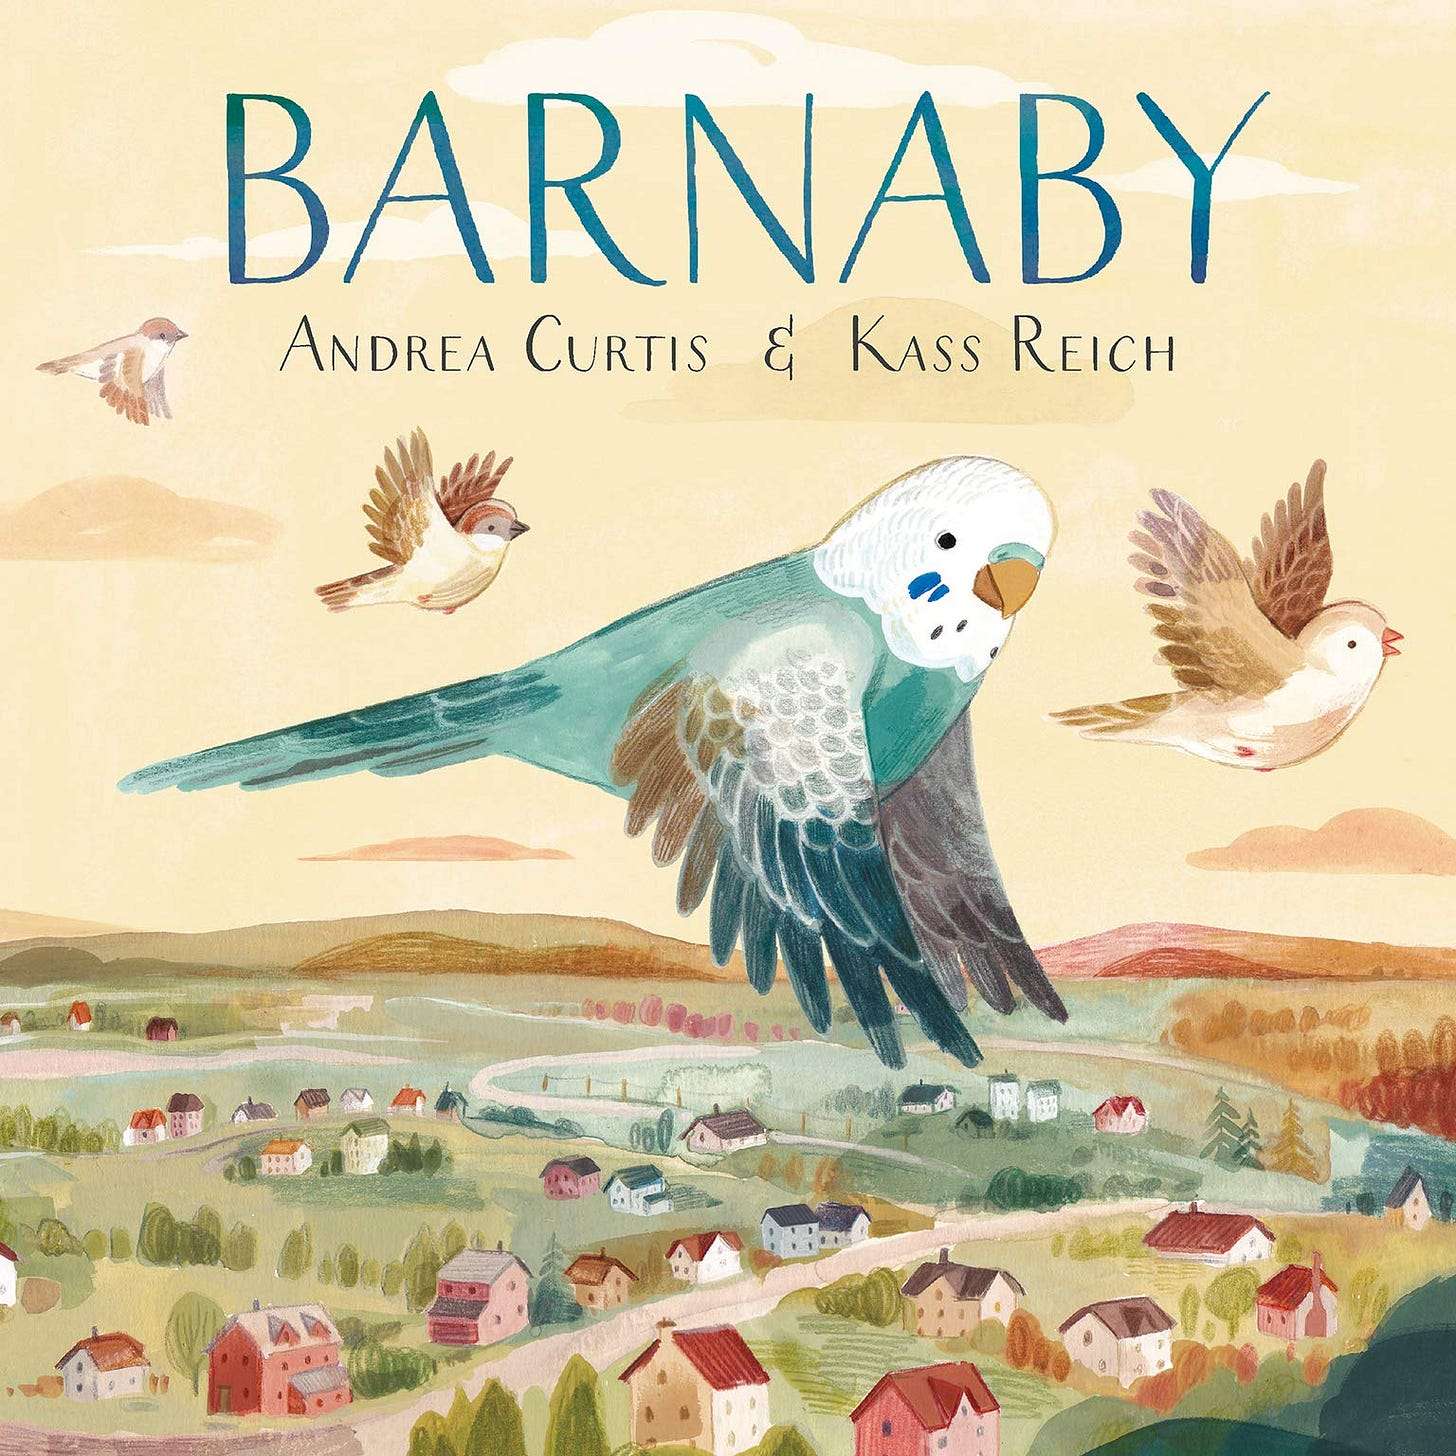 Barnaby by Andrea Curtis